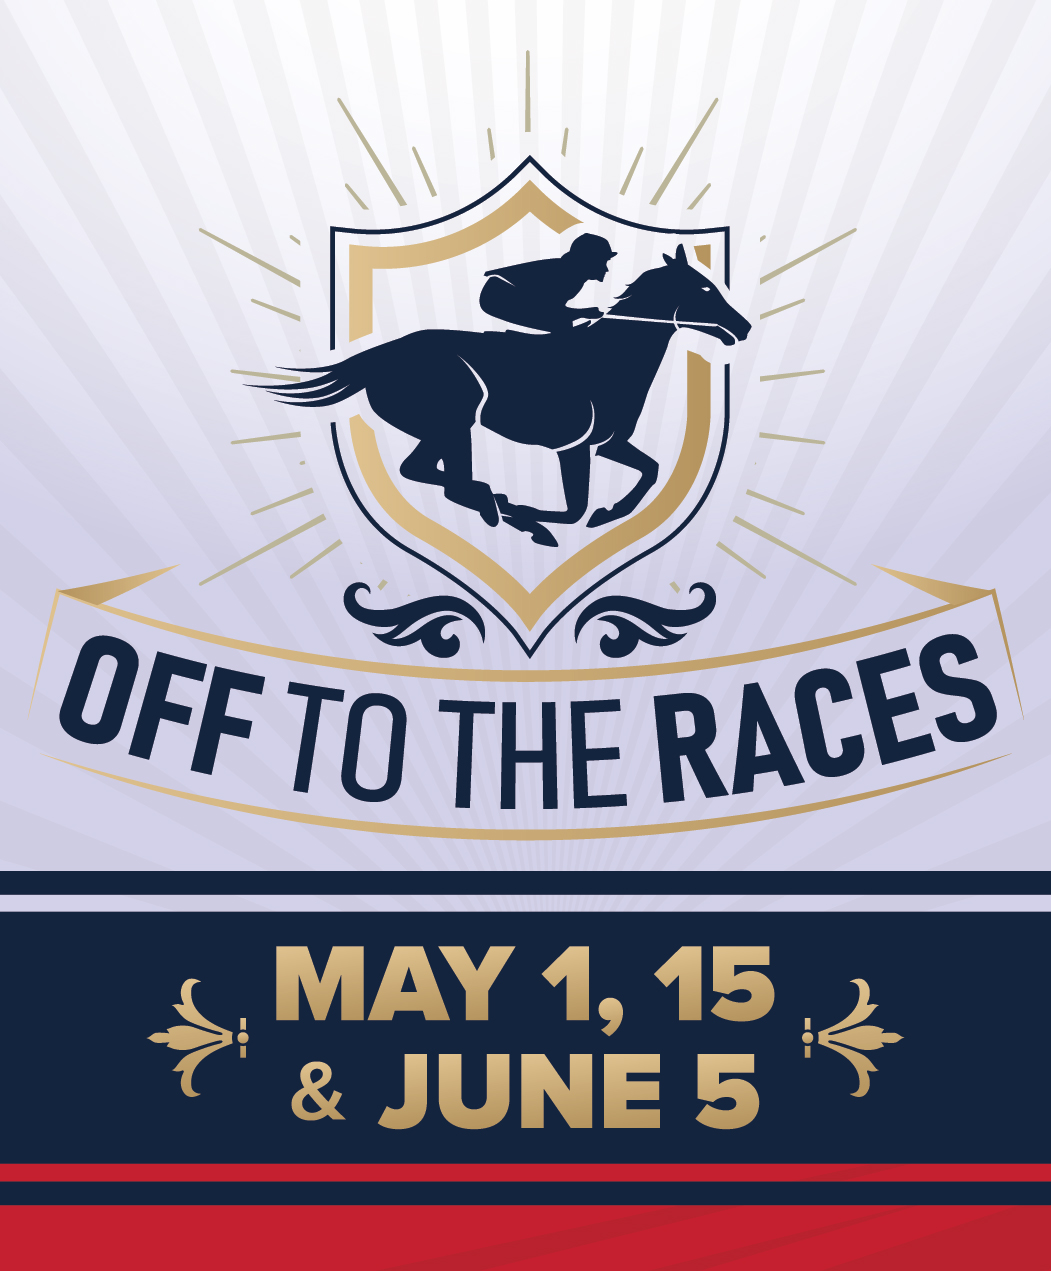 Off to the Races